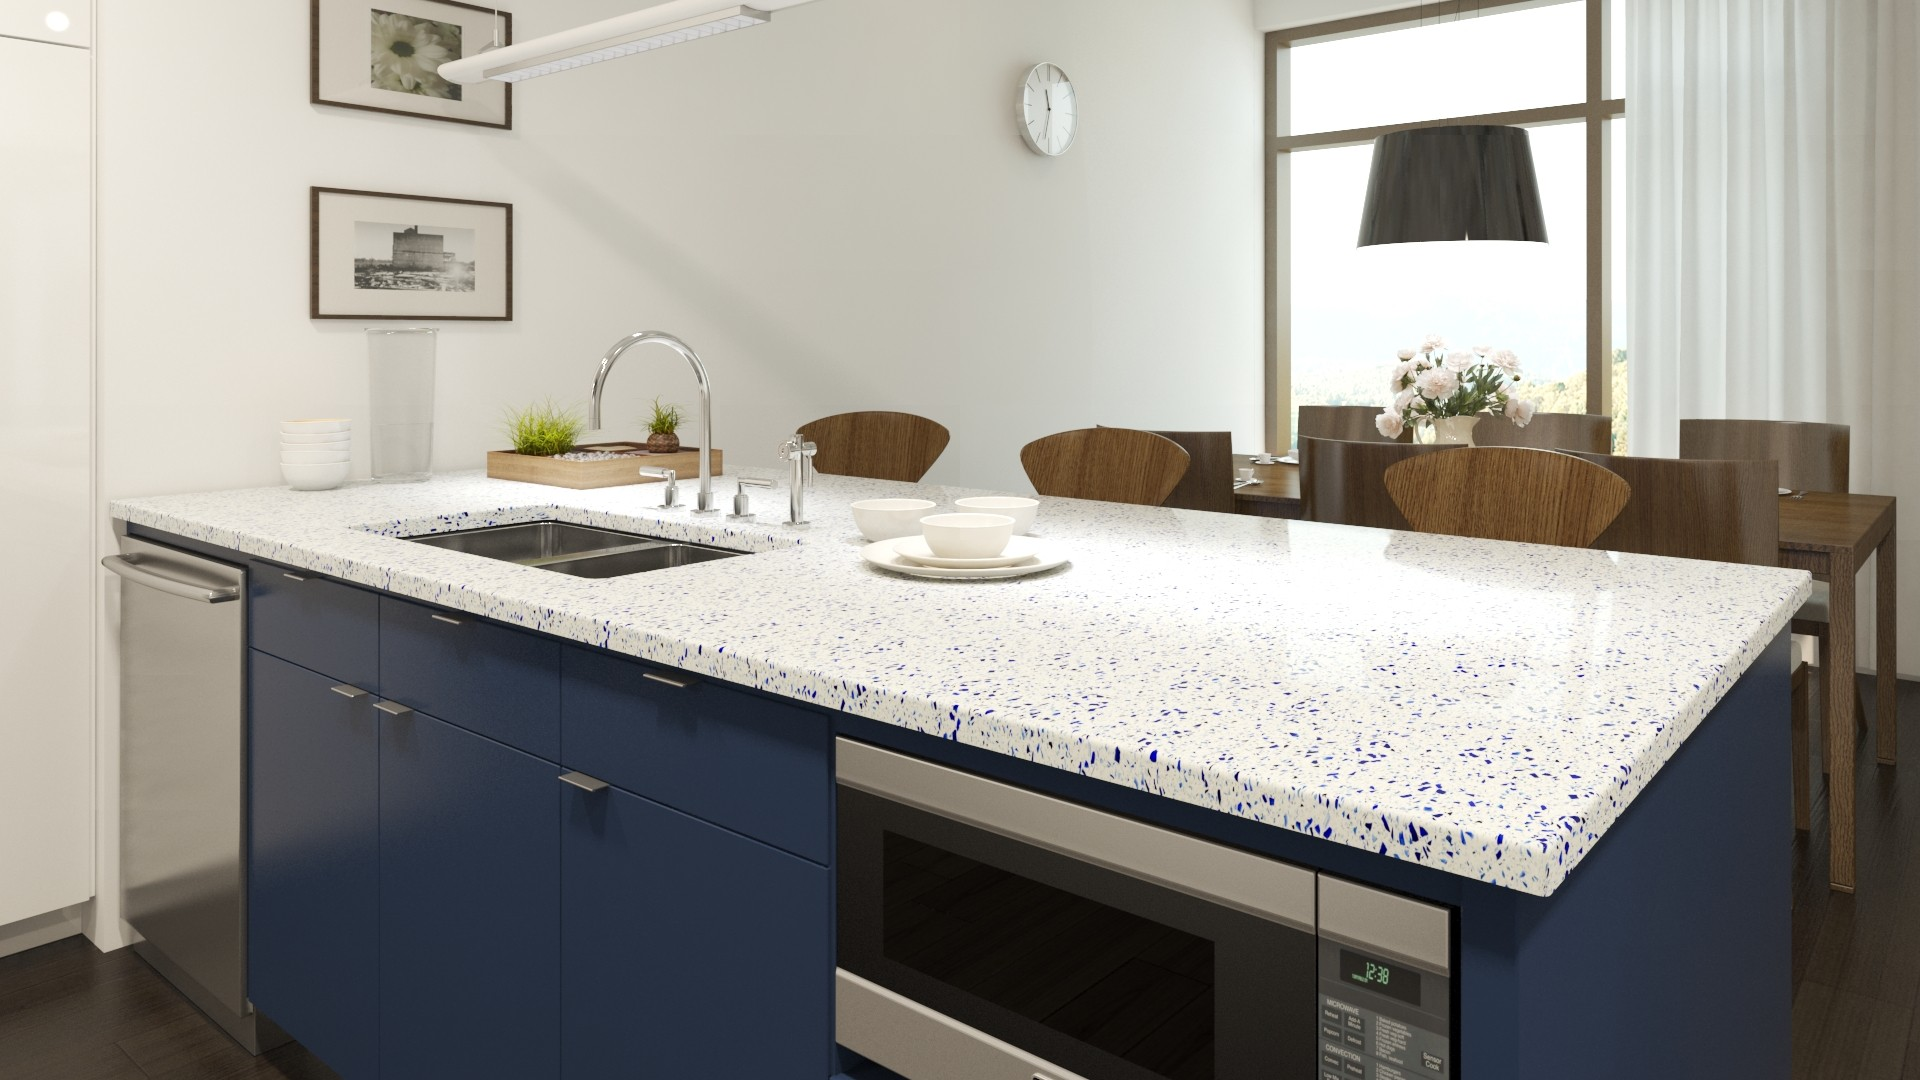 15 Favorite Kitchen Countertop Materials Marblecom